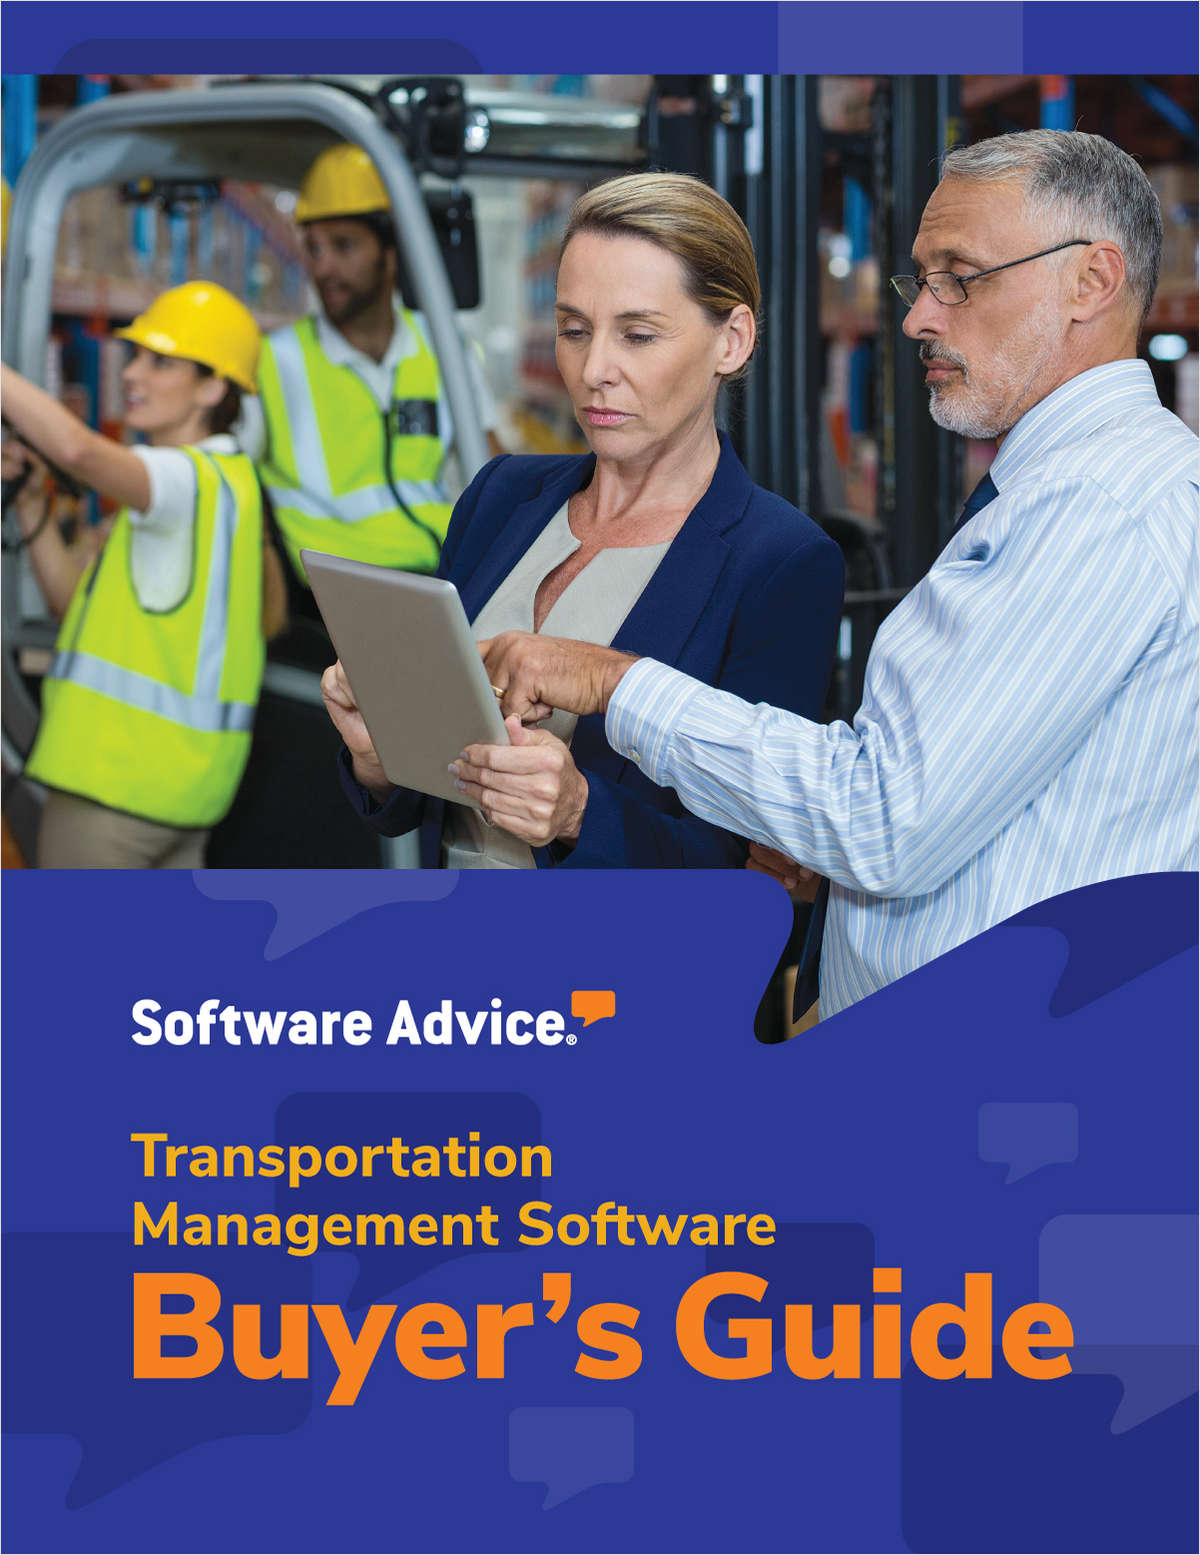 Software Advice's Guide to Buying Transportation Management Software in 2019